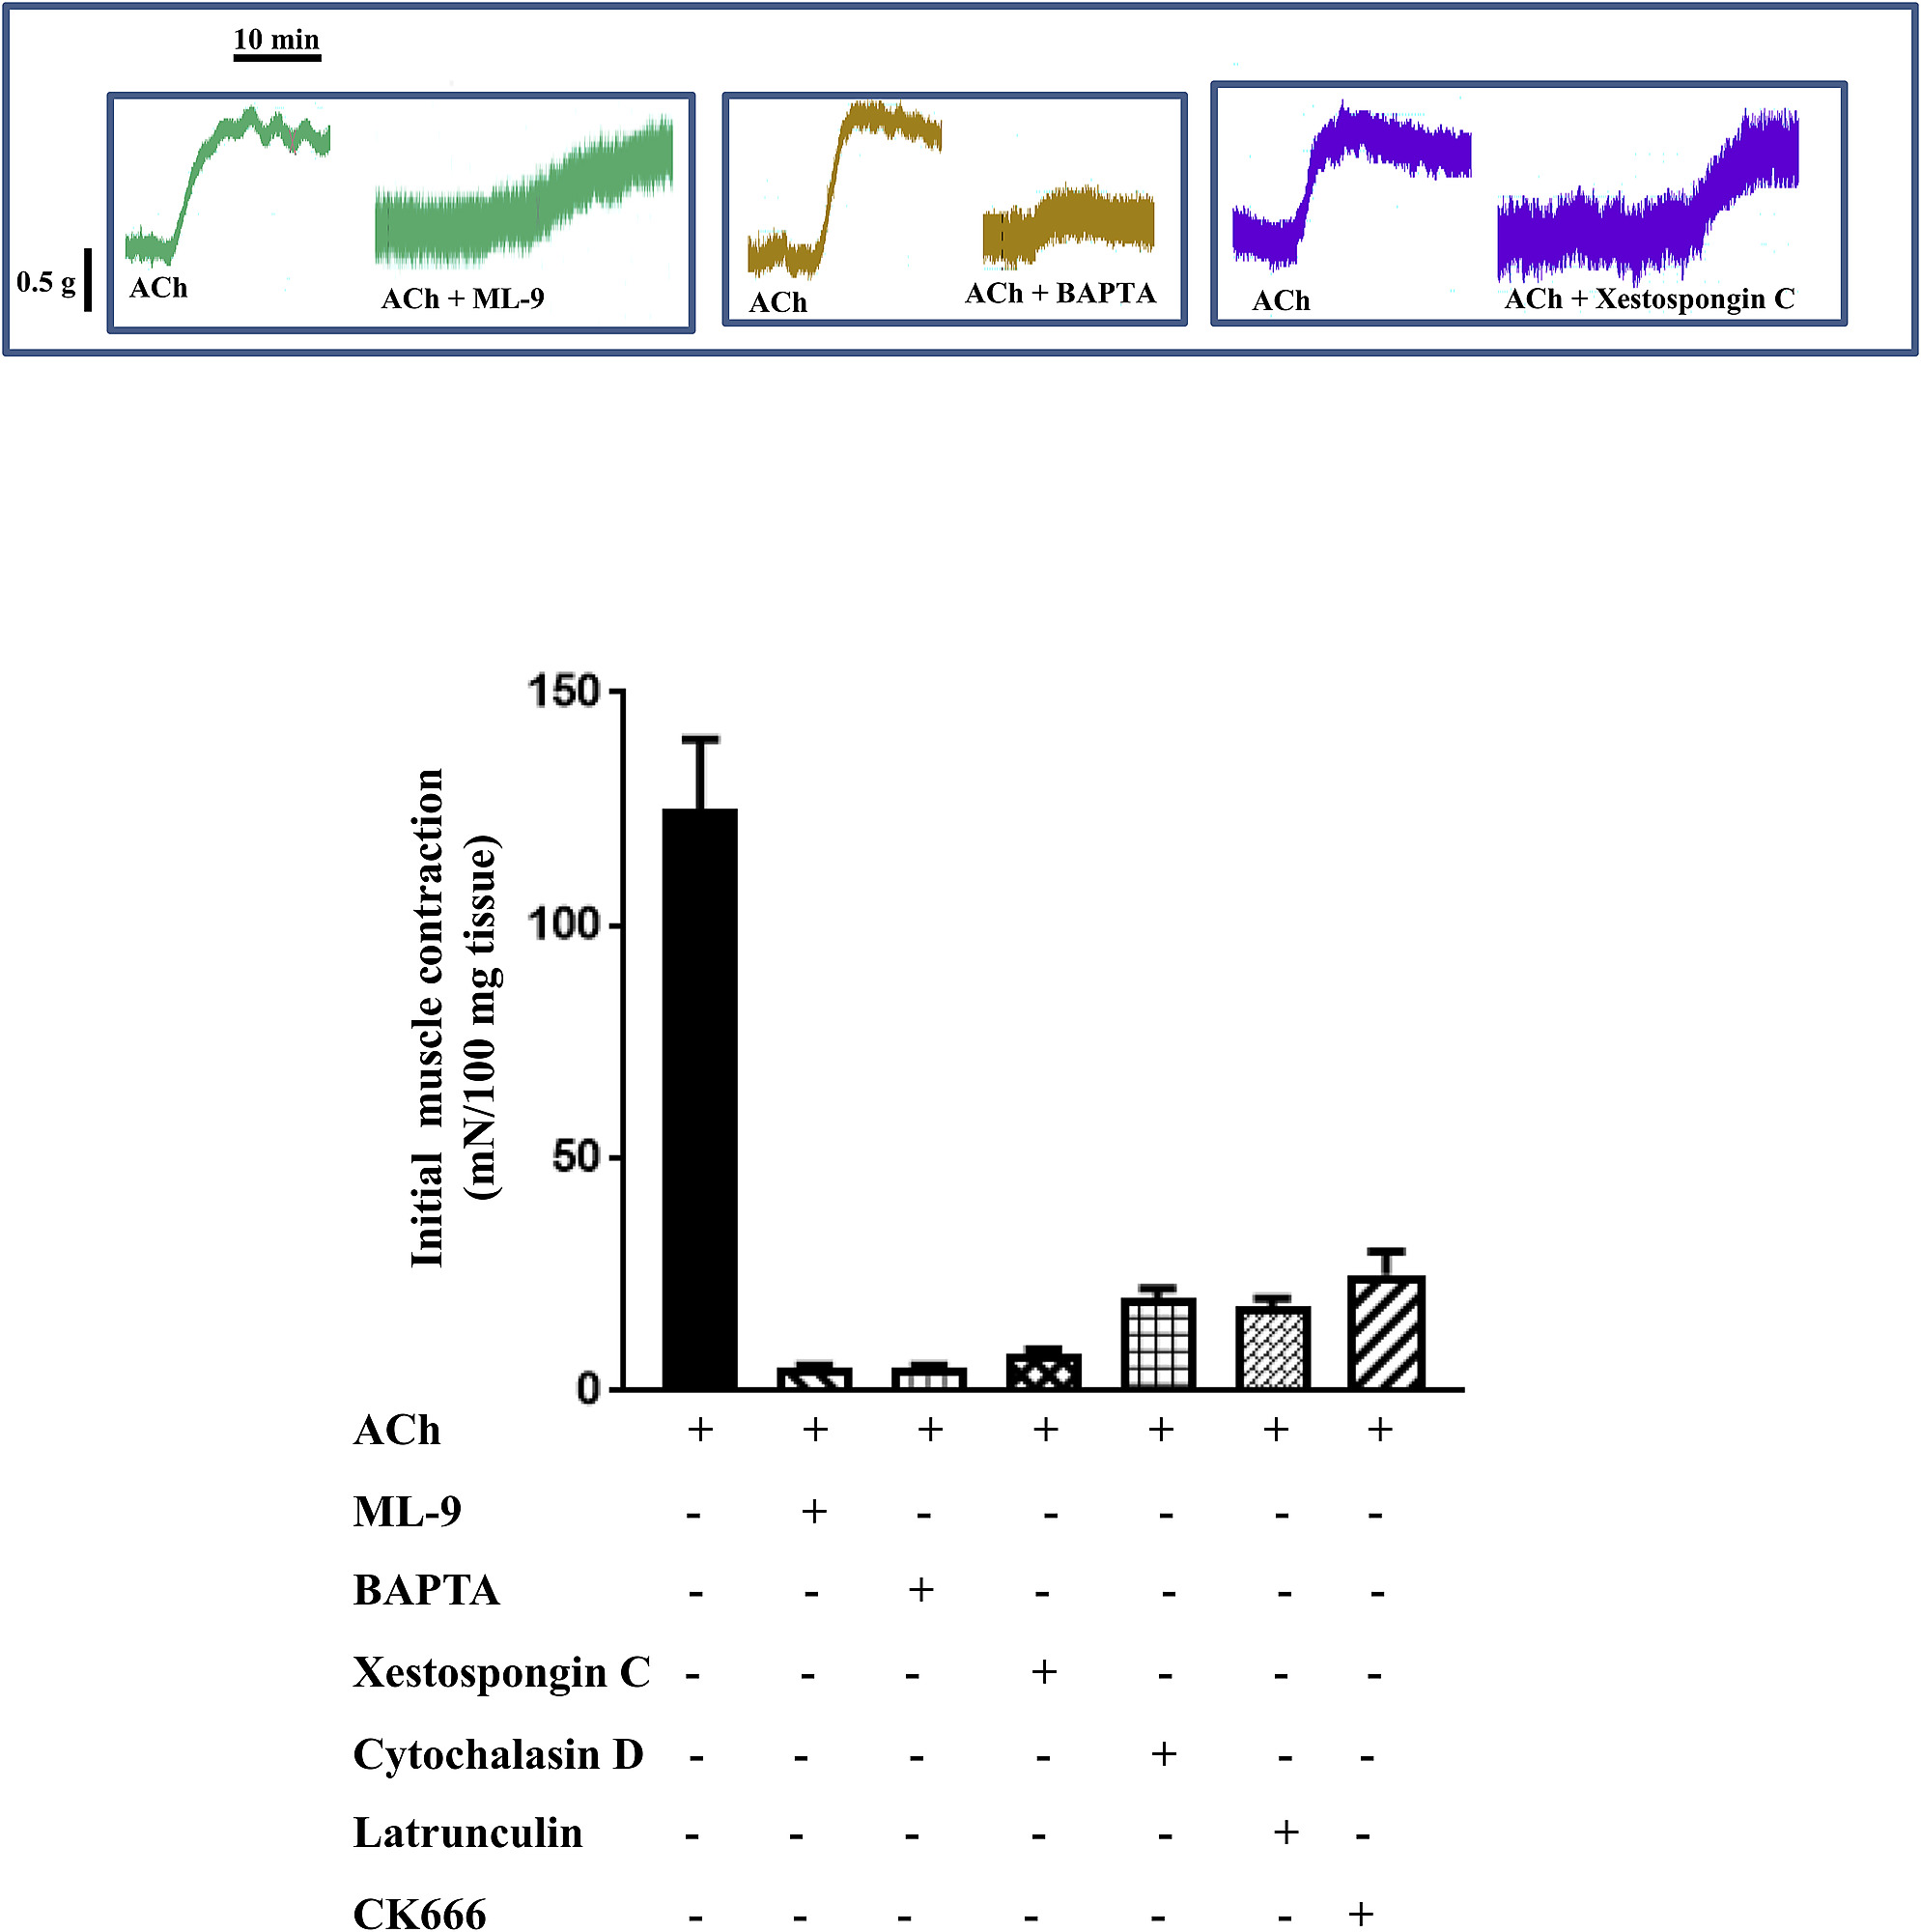 hight resolution of inhibition of initial actin polymerization prevents ach induced initial smooth muscle contraction